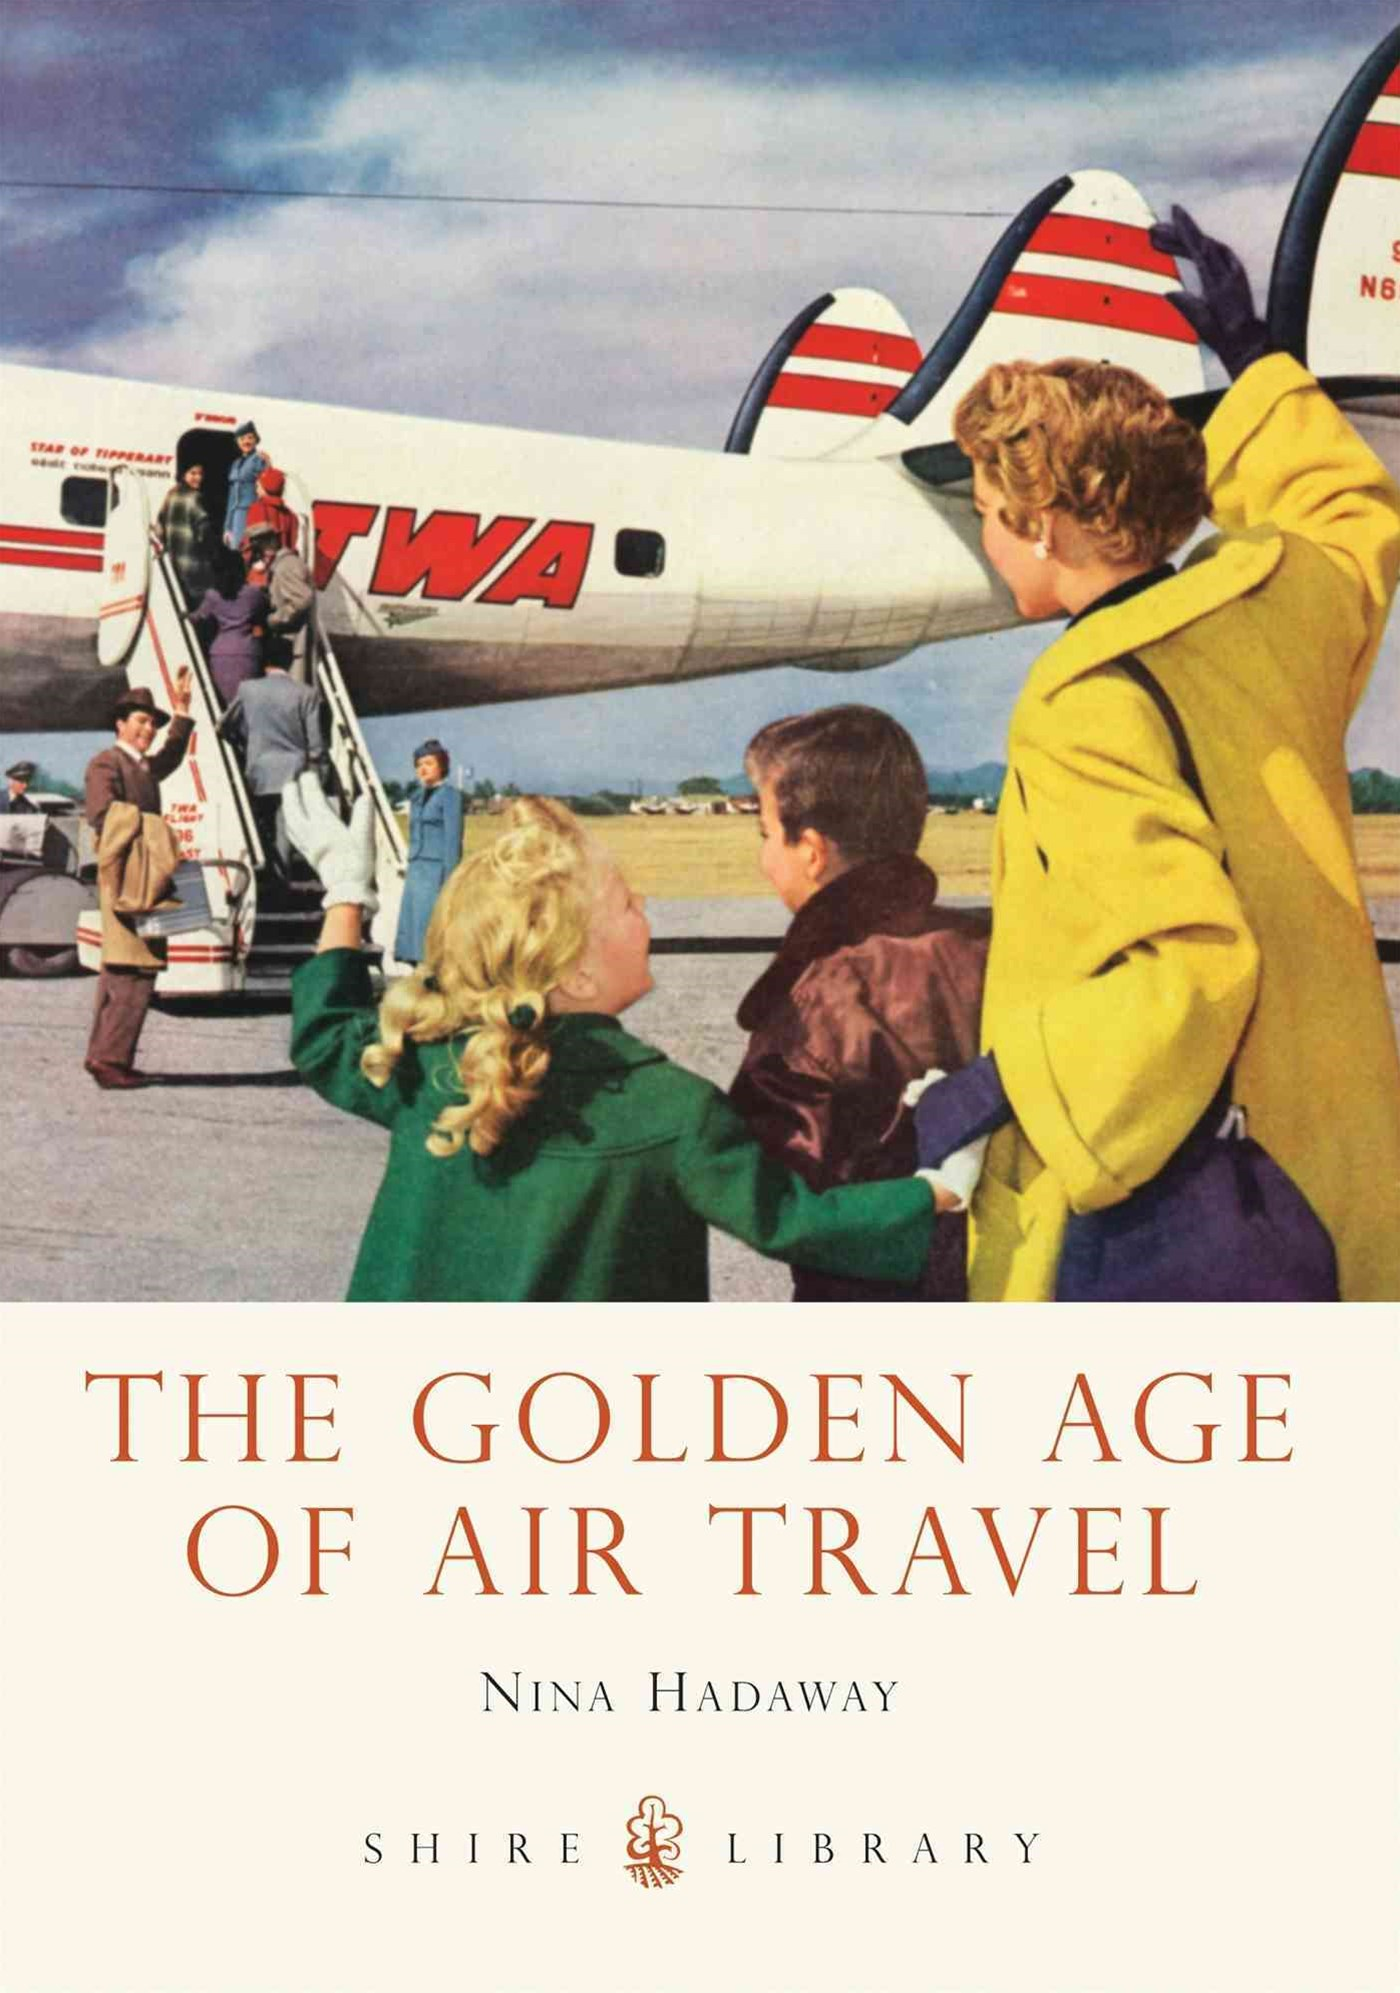 Golden Age of Air Travel